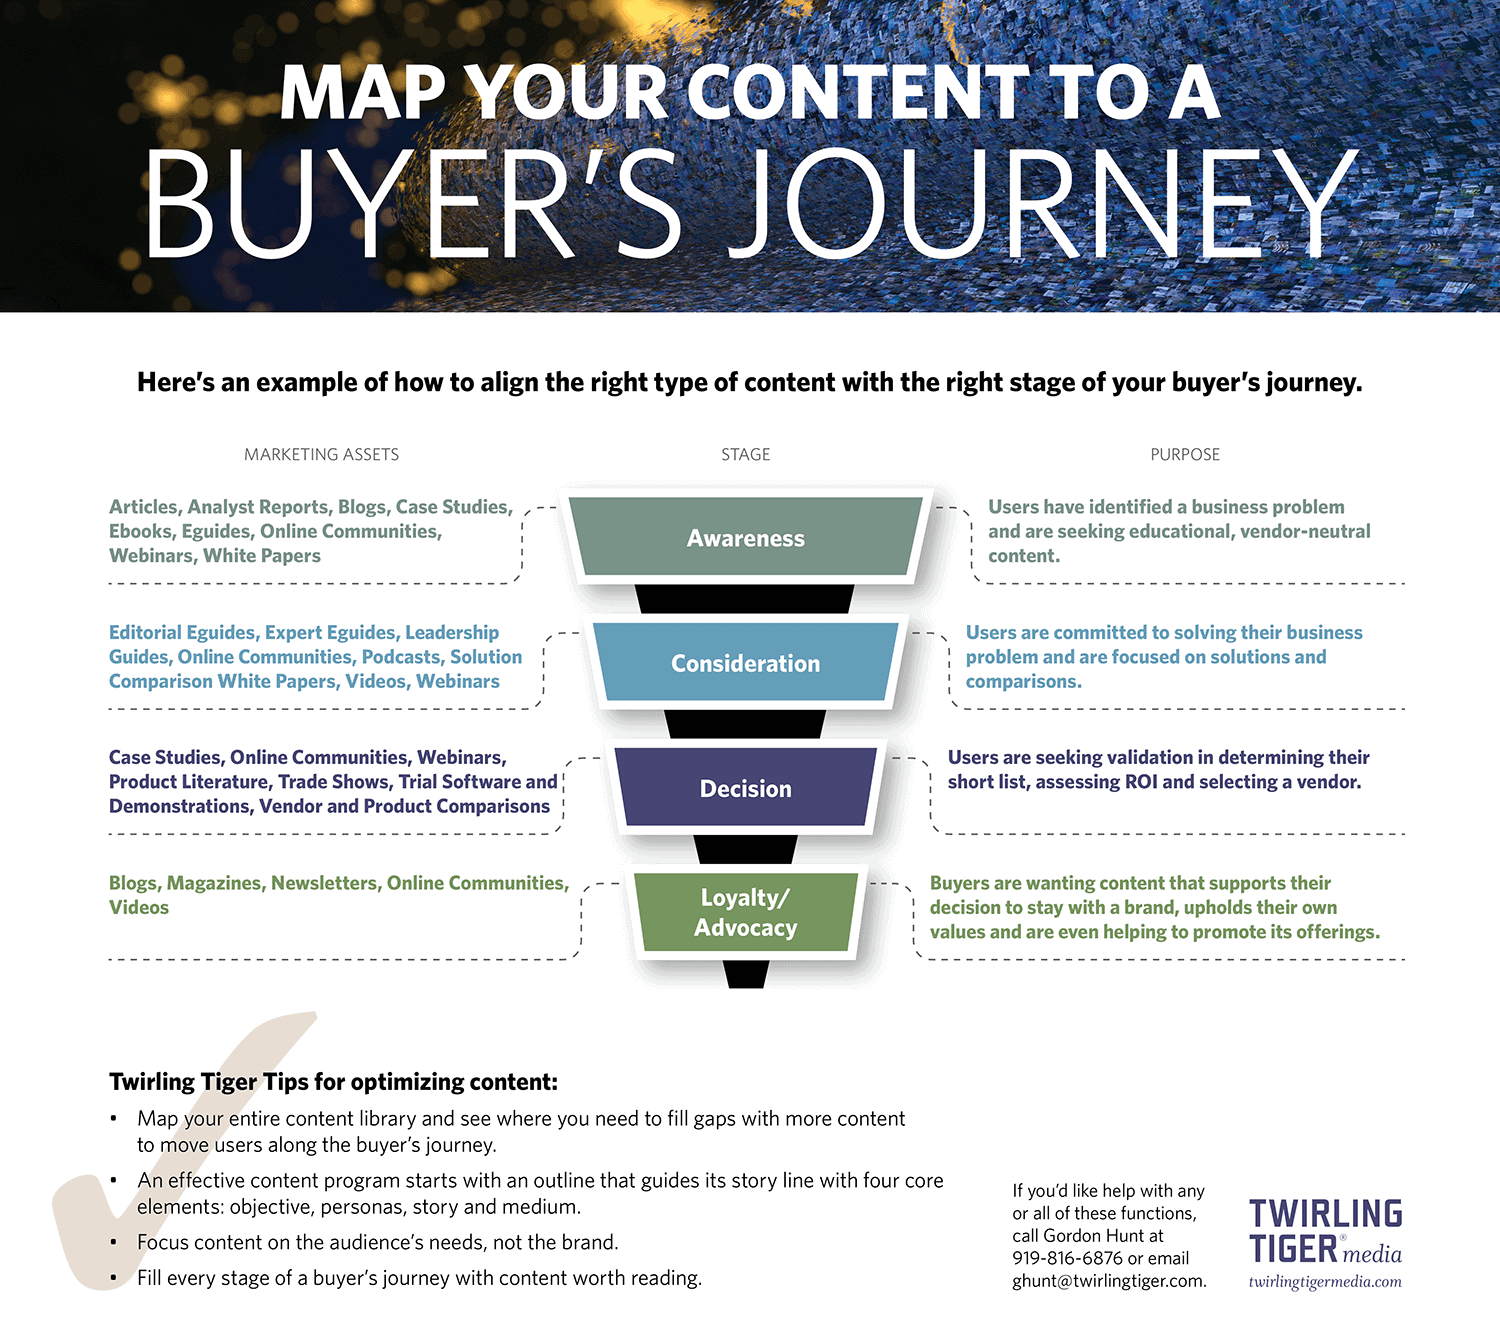 Map Your Content to a Buyer's Journey